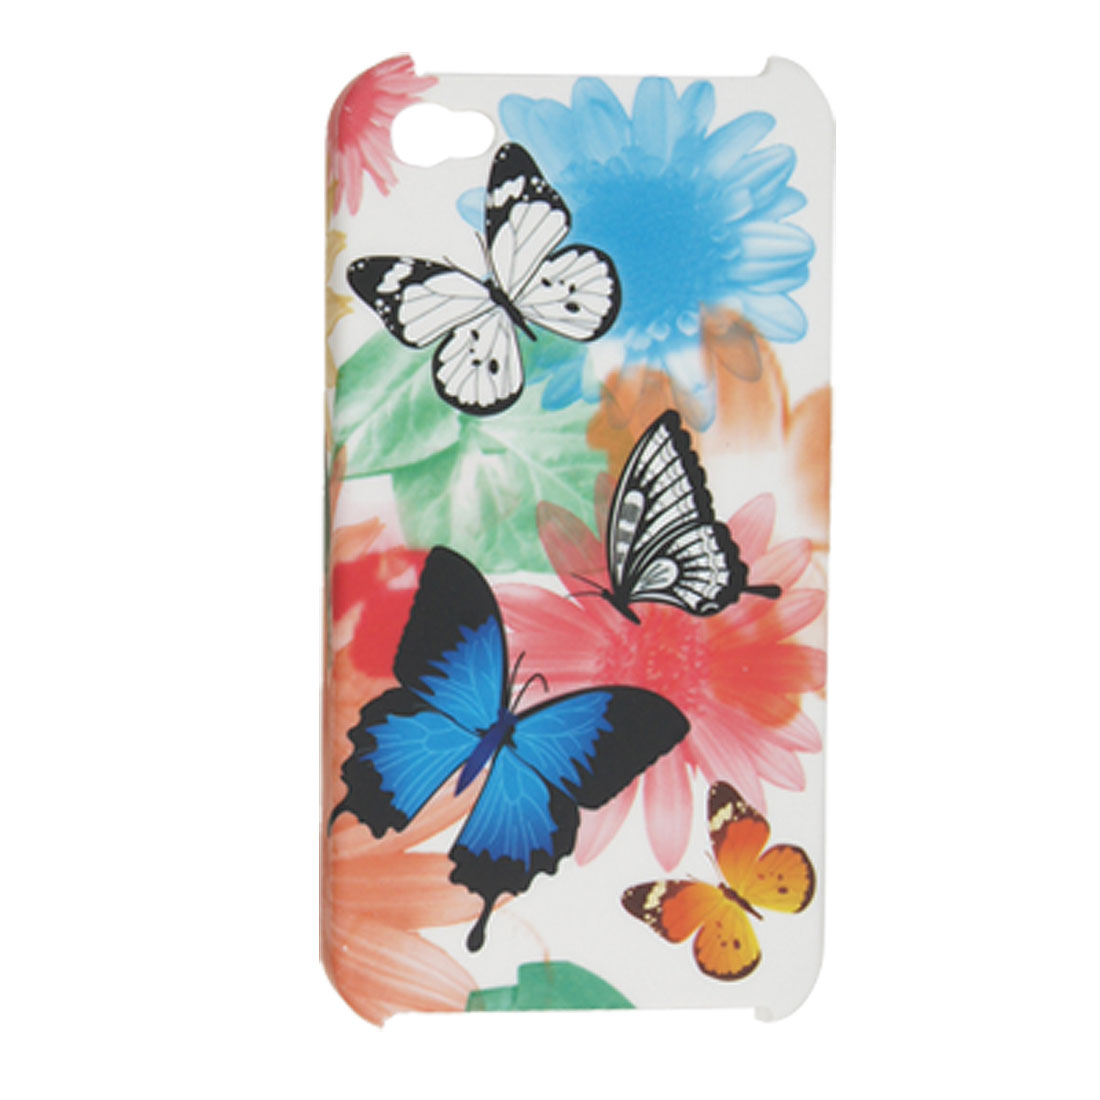 Colorful Butterfly Print Rubberized Plastic Back Cover for iPhone 4 4G